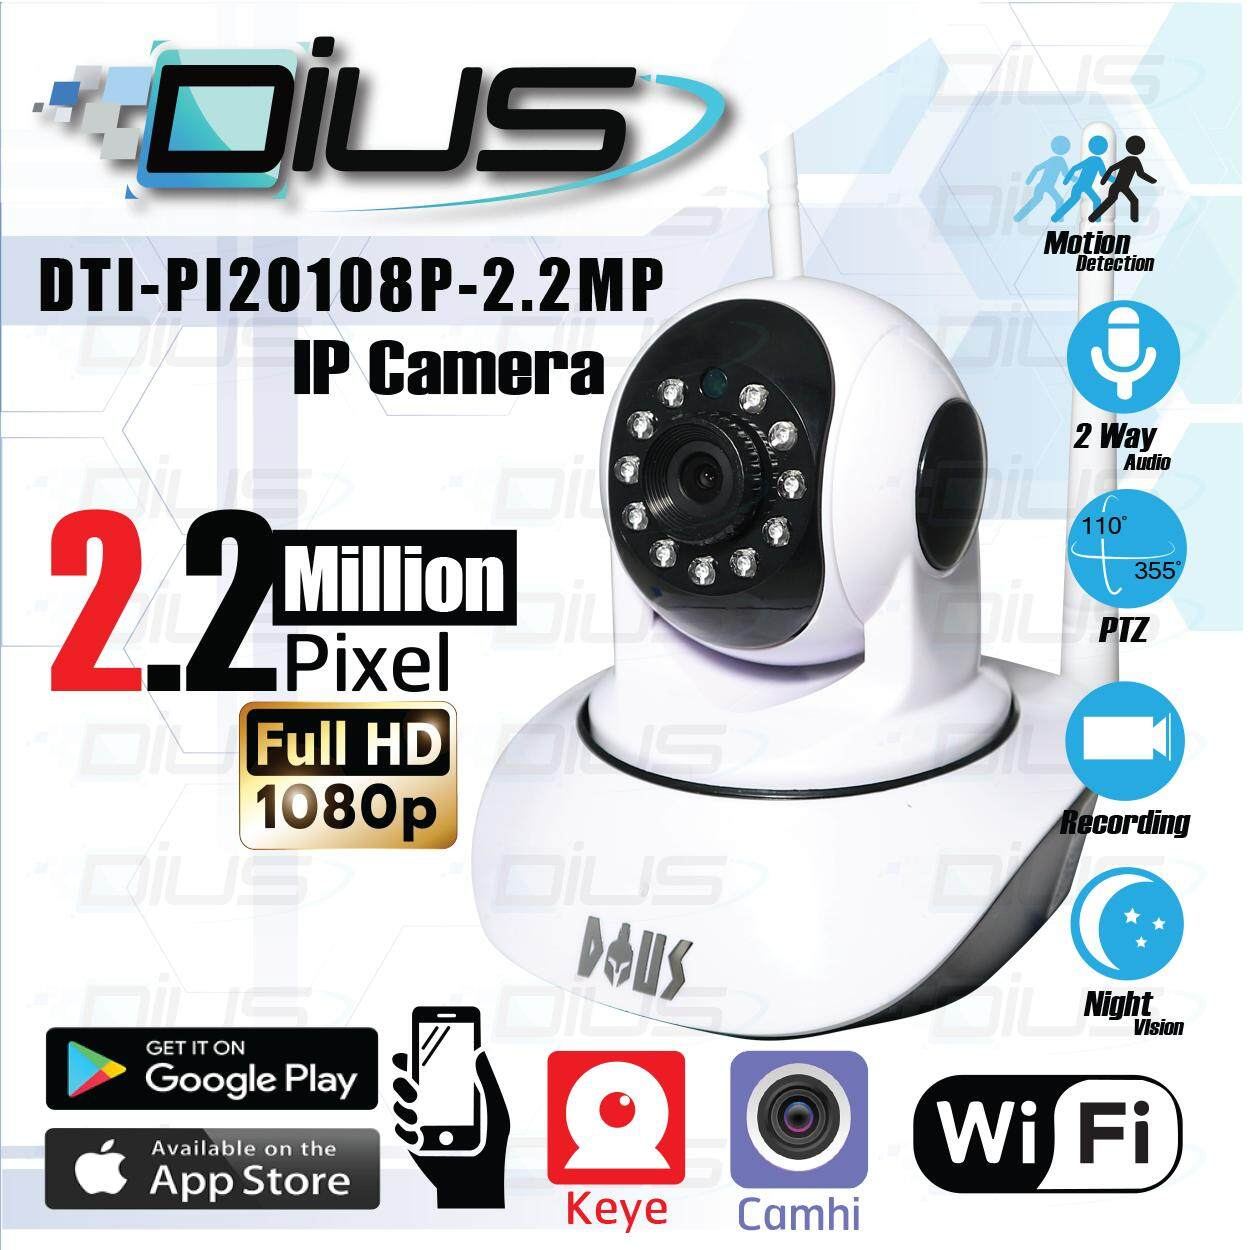 กล้องวงจรปิด กล้องไอพี Full Hd 1080p Wifi / Wirless Ip Camera Robot 2.2 Mp ( App : Keye ) And ( App : Camhi ) By It Express.